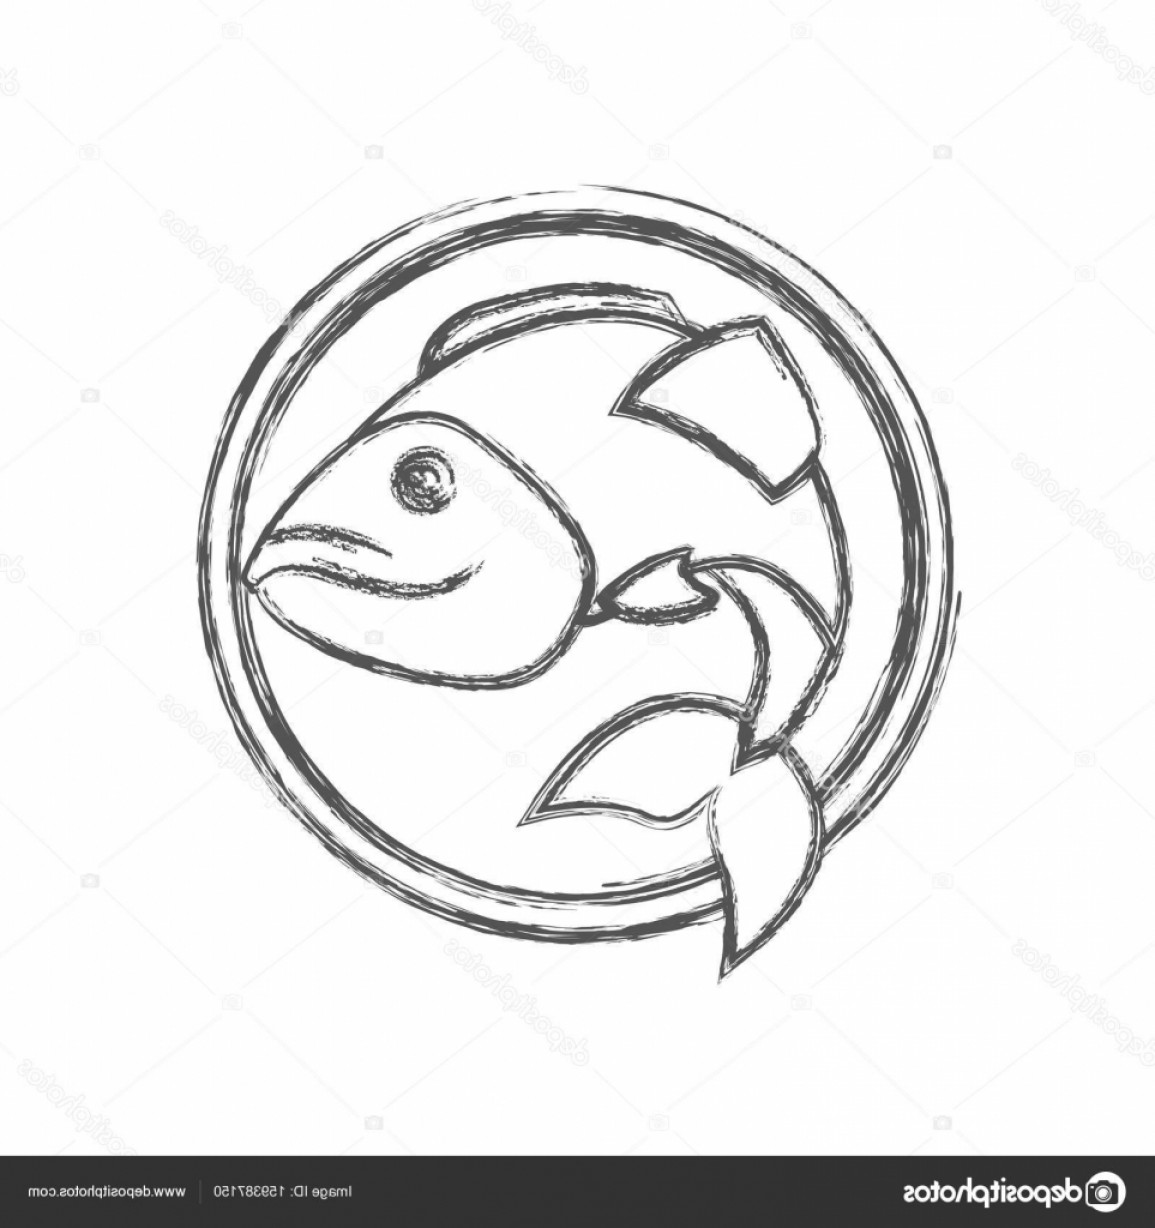 Largemouth Bass Silhouette Vector: Stock Illustration Blurred Sketch Silhouette Circular Emblem